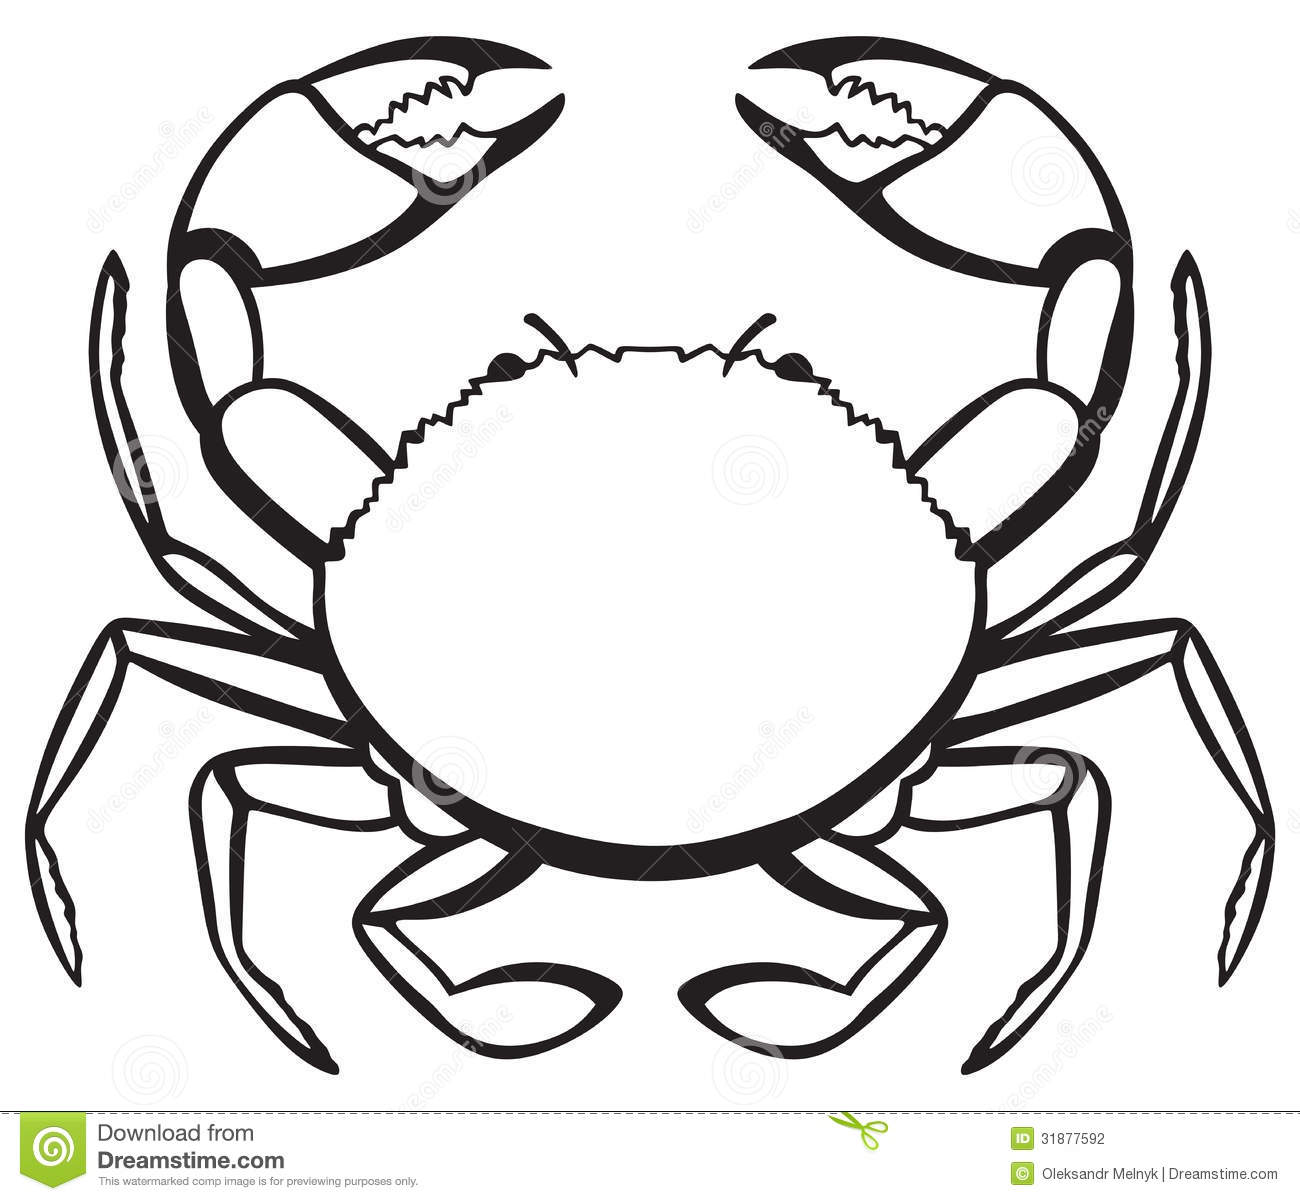 crab%20clipart%20black%20and%20white